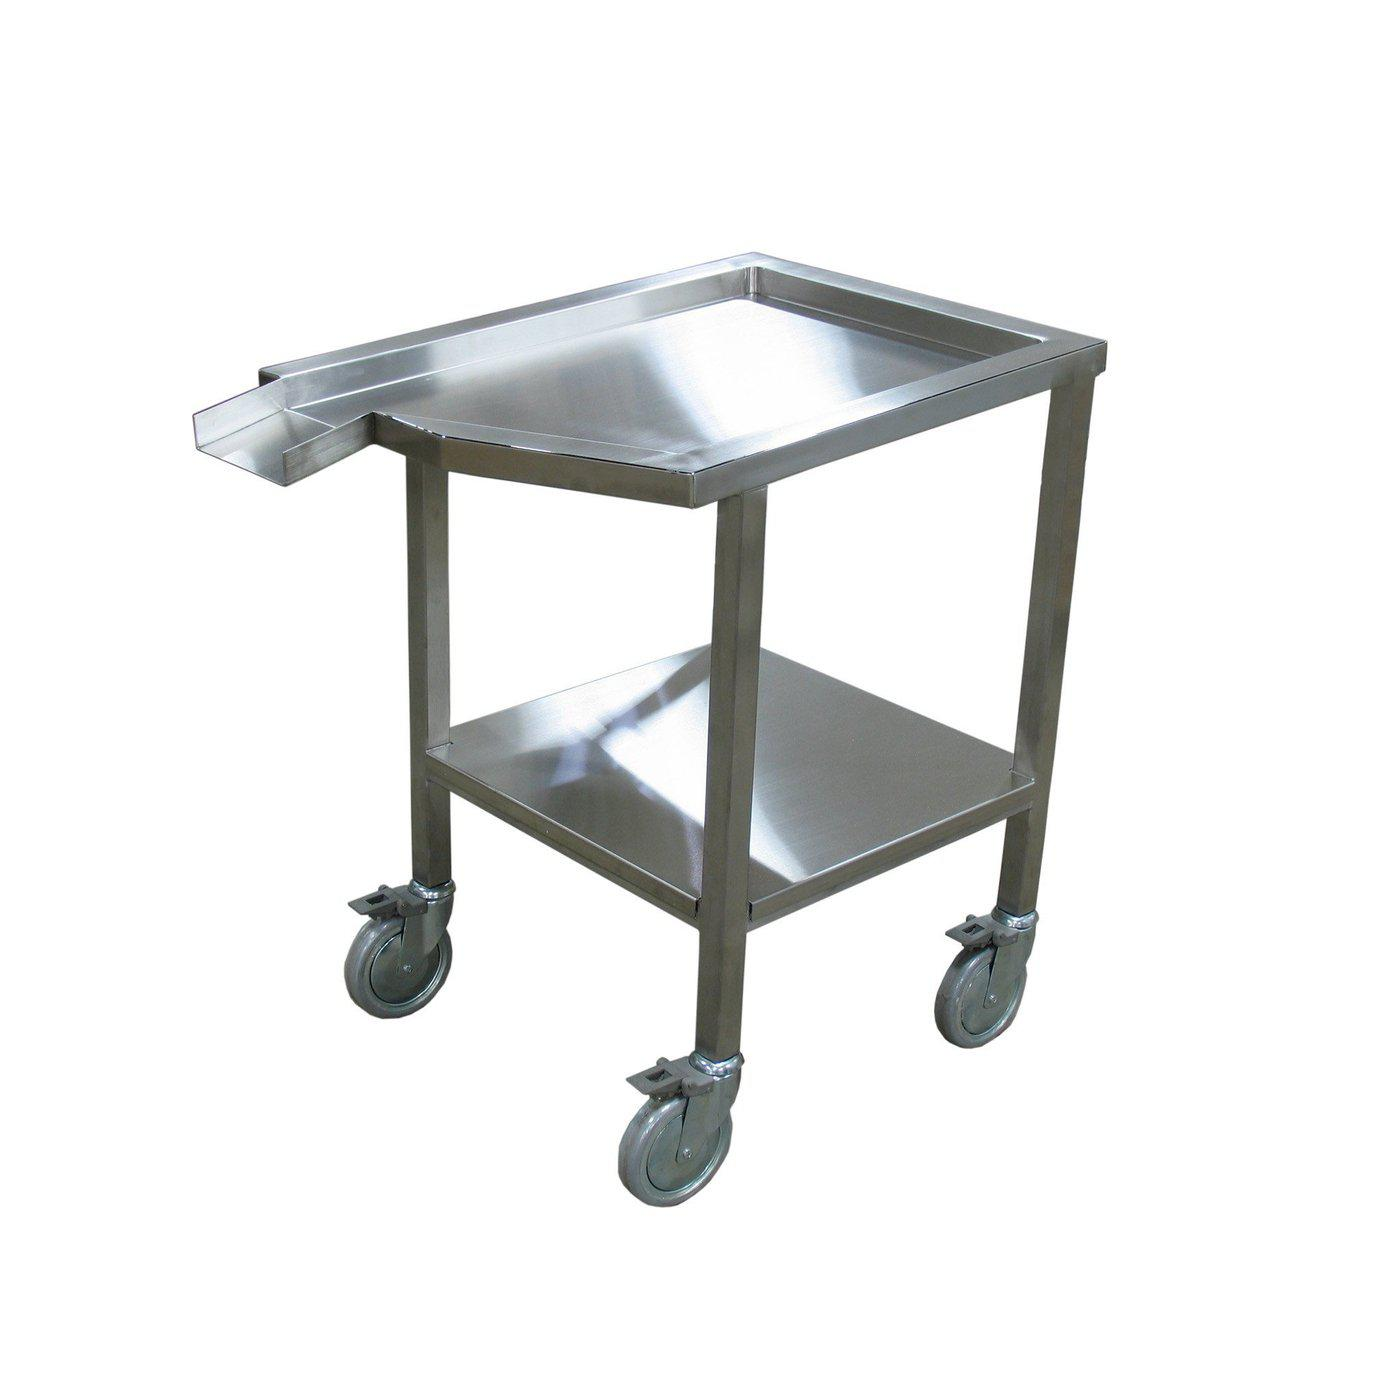 Dissecting Cart-Pedestal Autopsy Tables-Mortech Manufacturing Company Inc. Quality Stainless Steel Autopsy, Morgue, Funeral Home, Necropsy, Veterinary / Anatomy, Dissection Equipment and Accessories